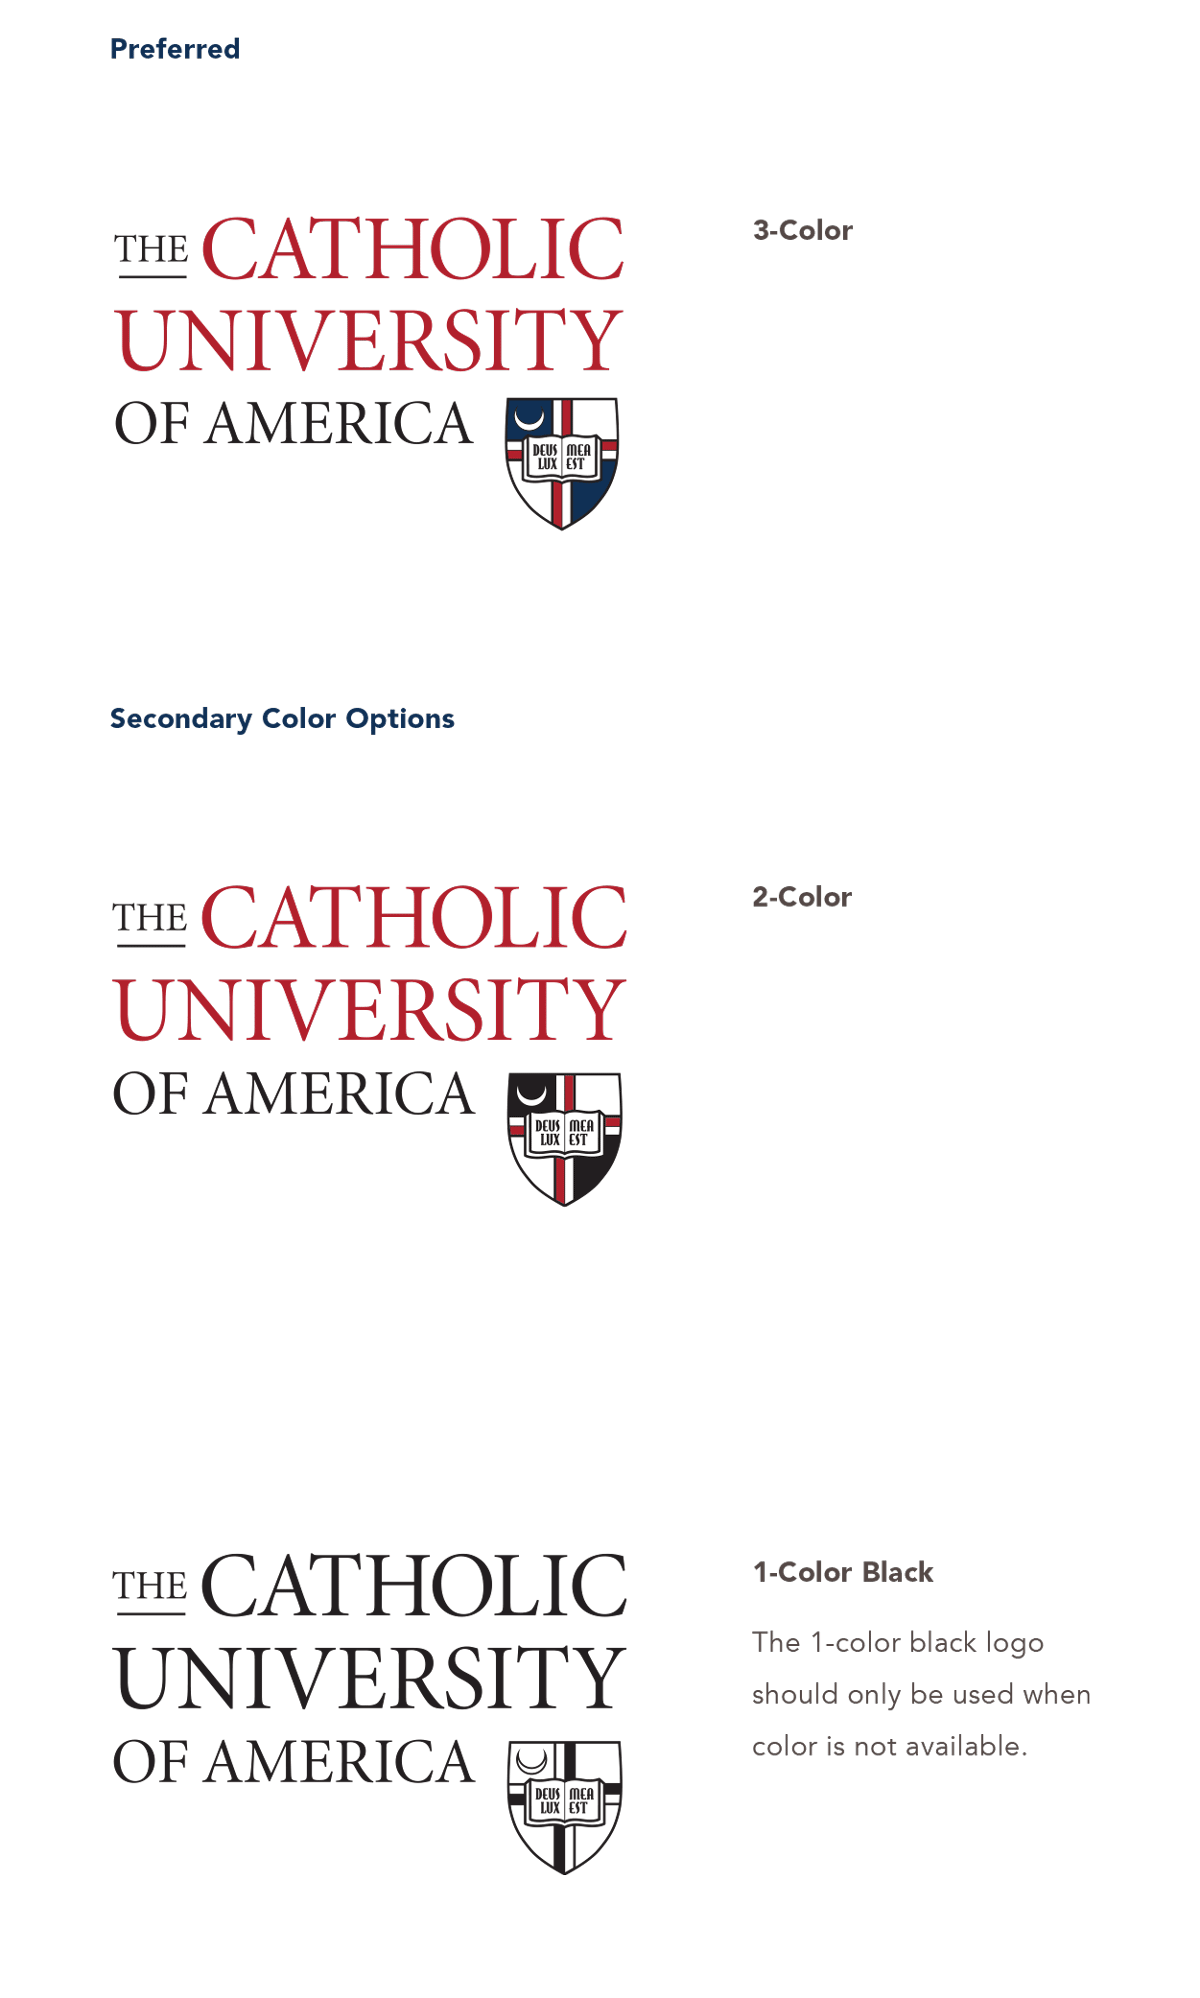 University Identity - logo color examples